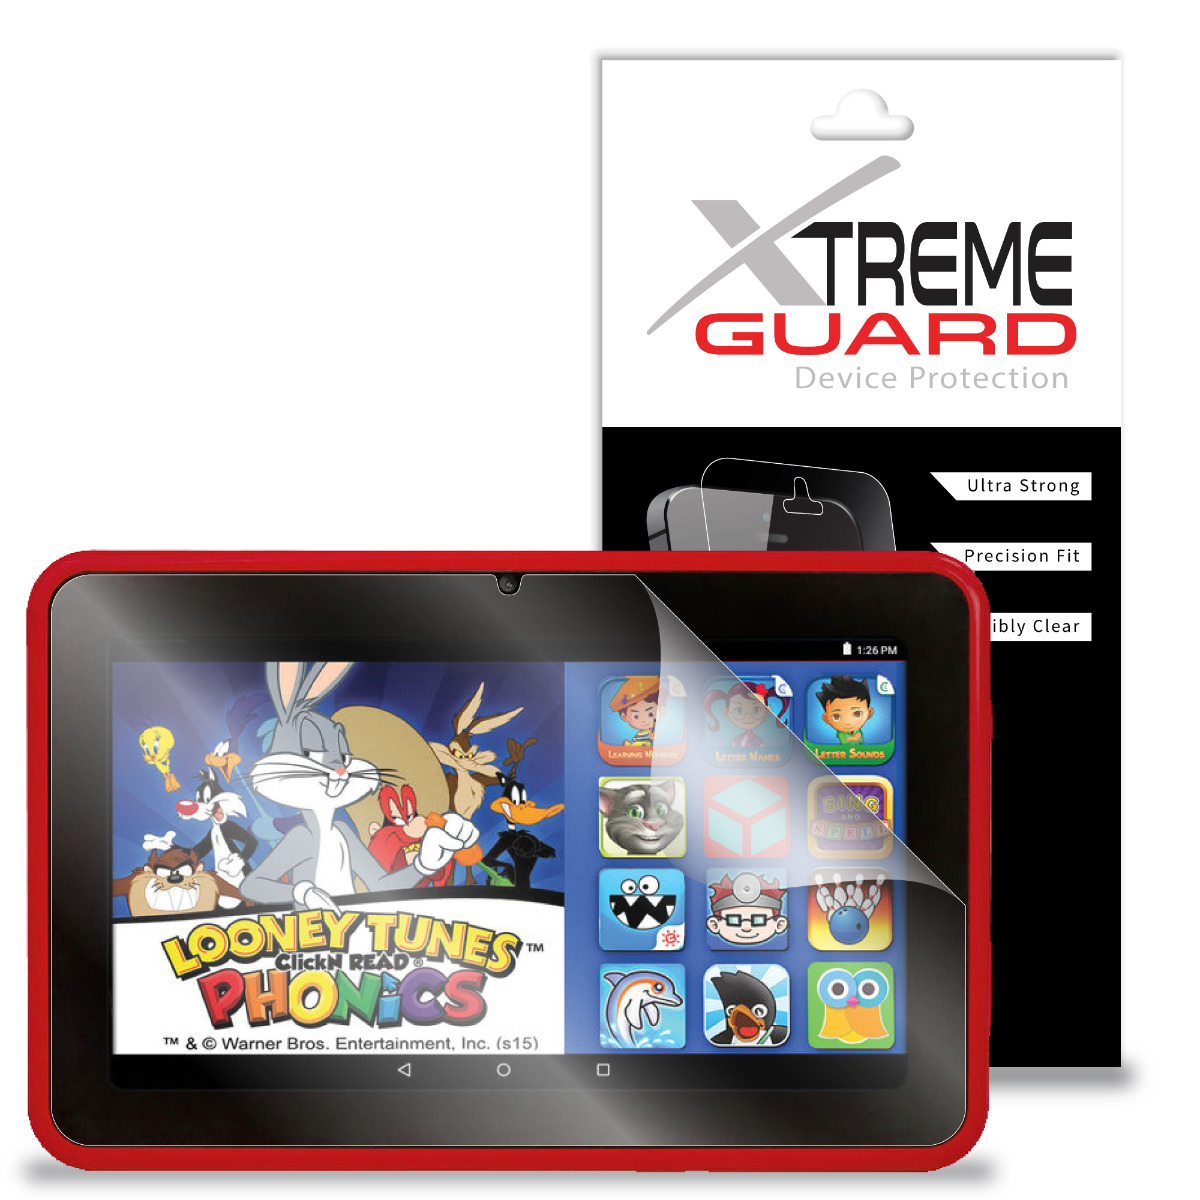 "XtremeGuard Screen Protector For EPIK Learning Tab 7"" Kids Tablet 16GB Intel Atom"